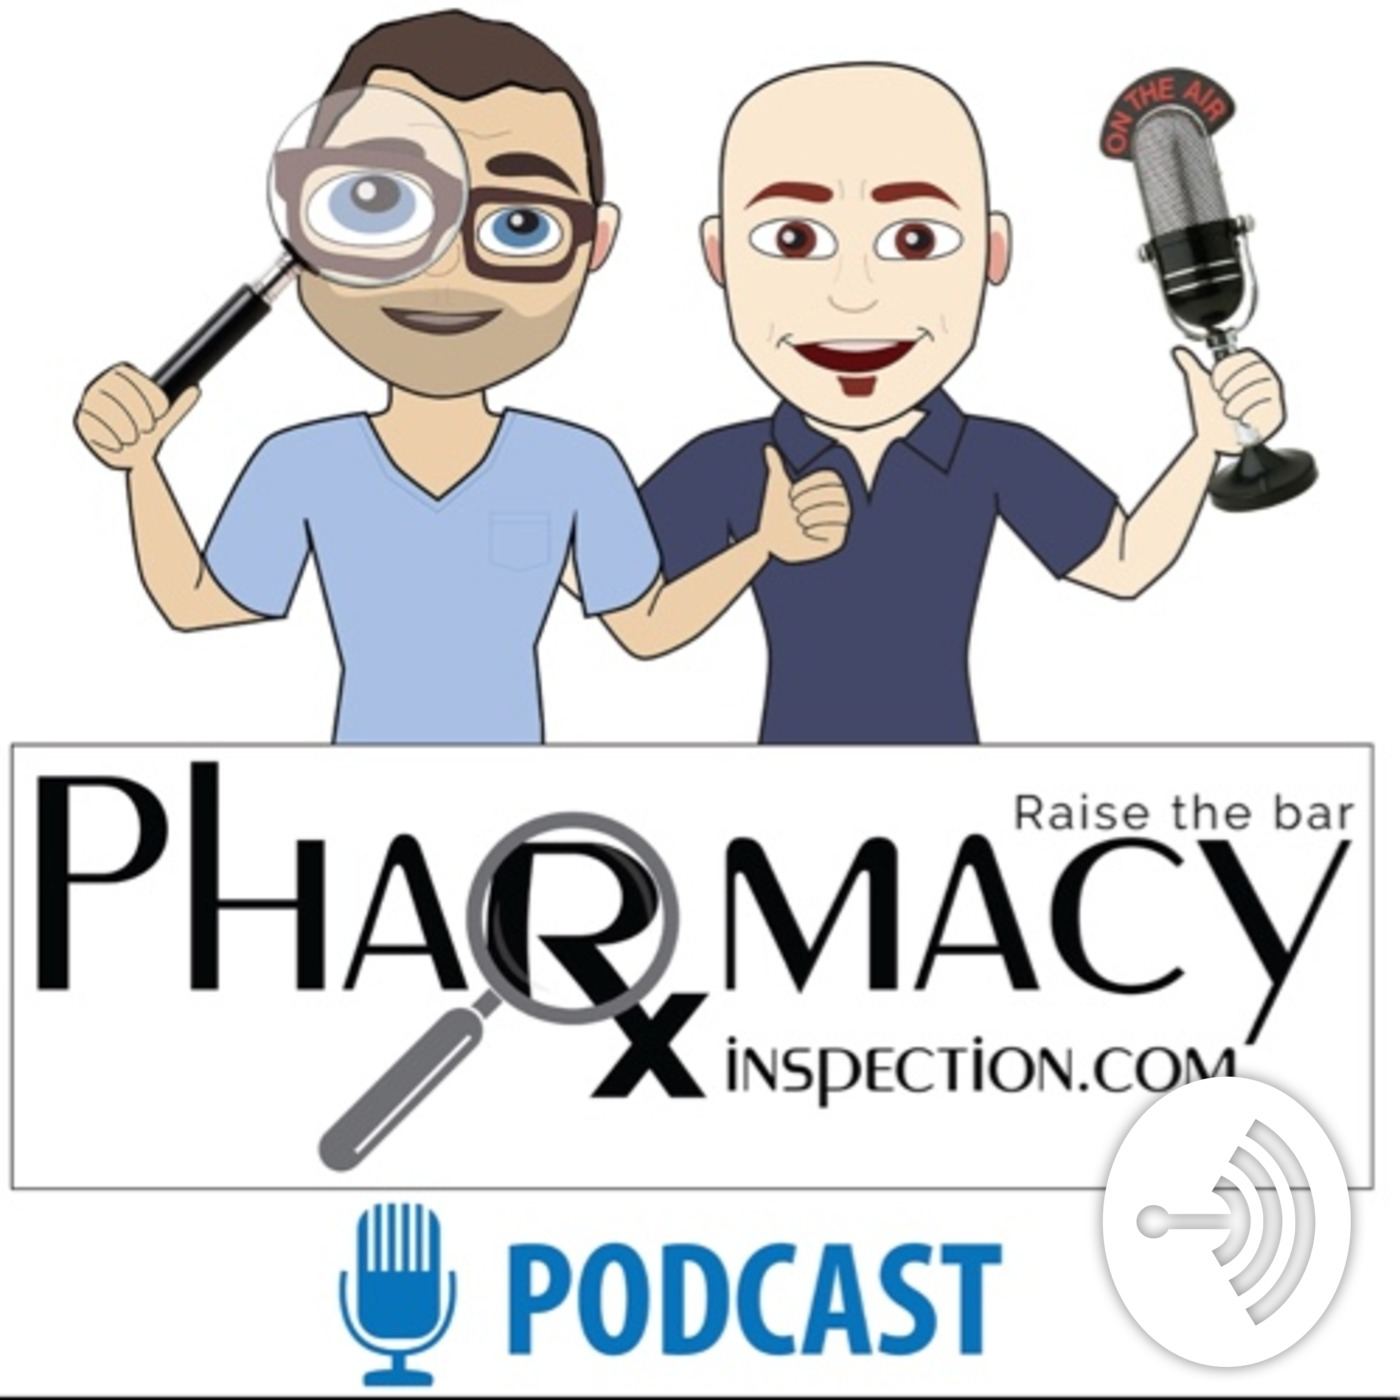 Pharmacy Inspection Podcast Episode 25 - Kim Kieffer